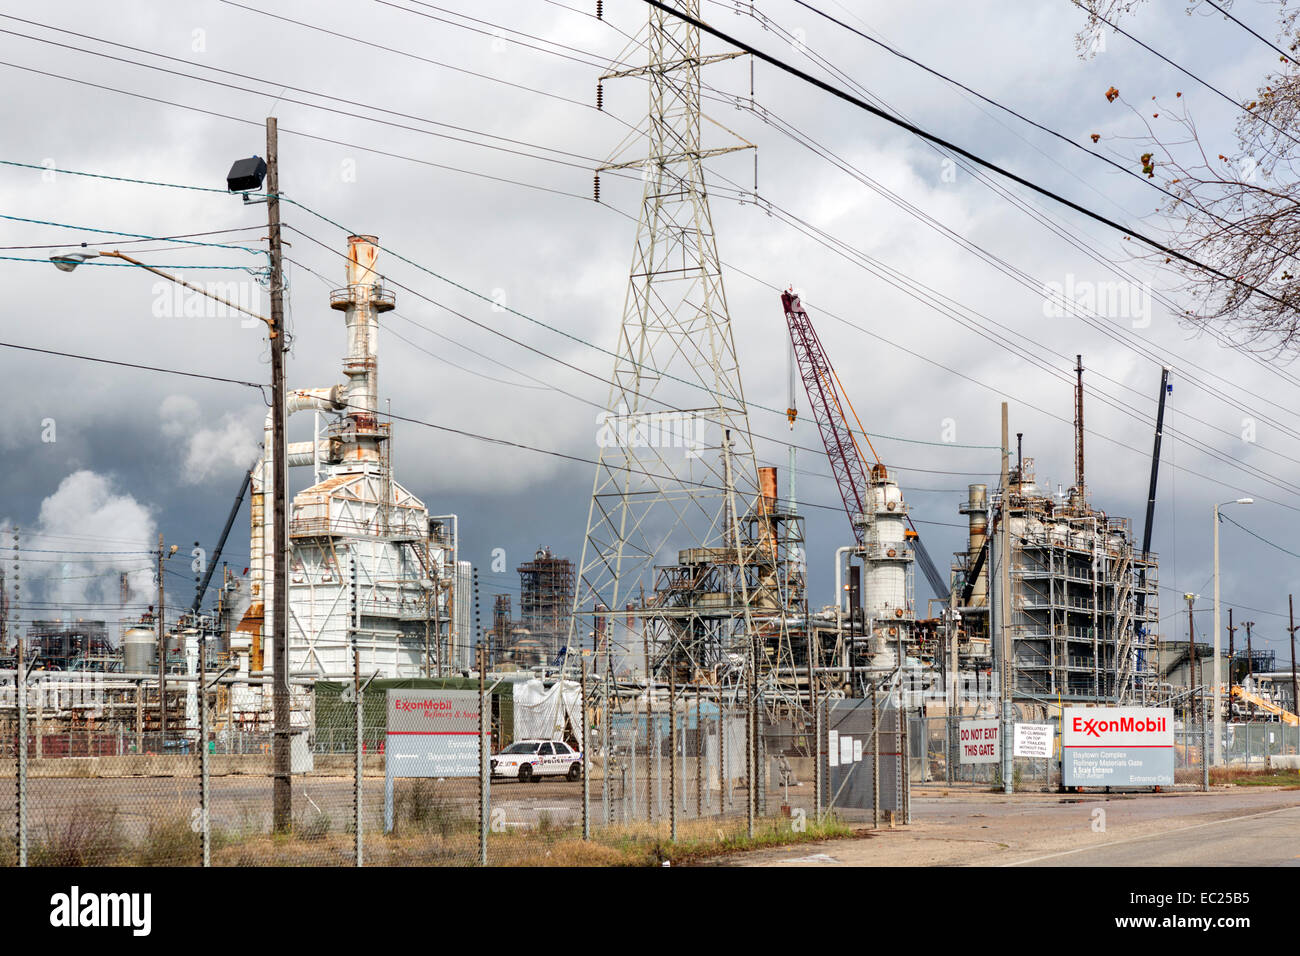 Exxon Mobil Stock Photos & Exxon Mobil Stock Images - Alamy